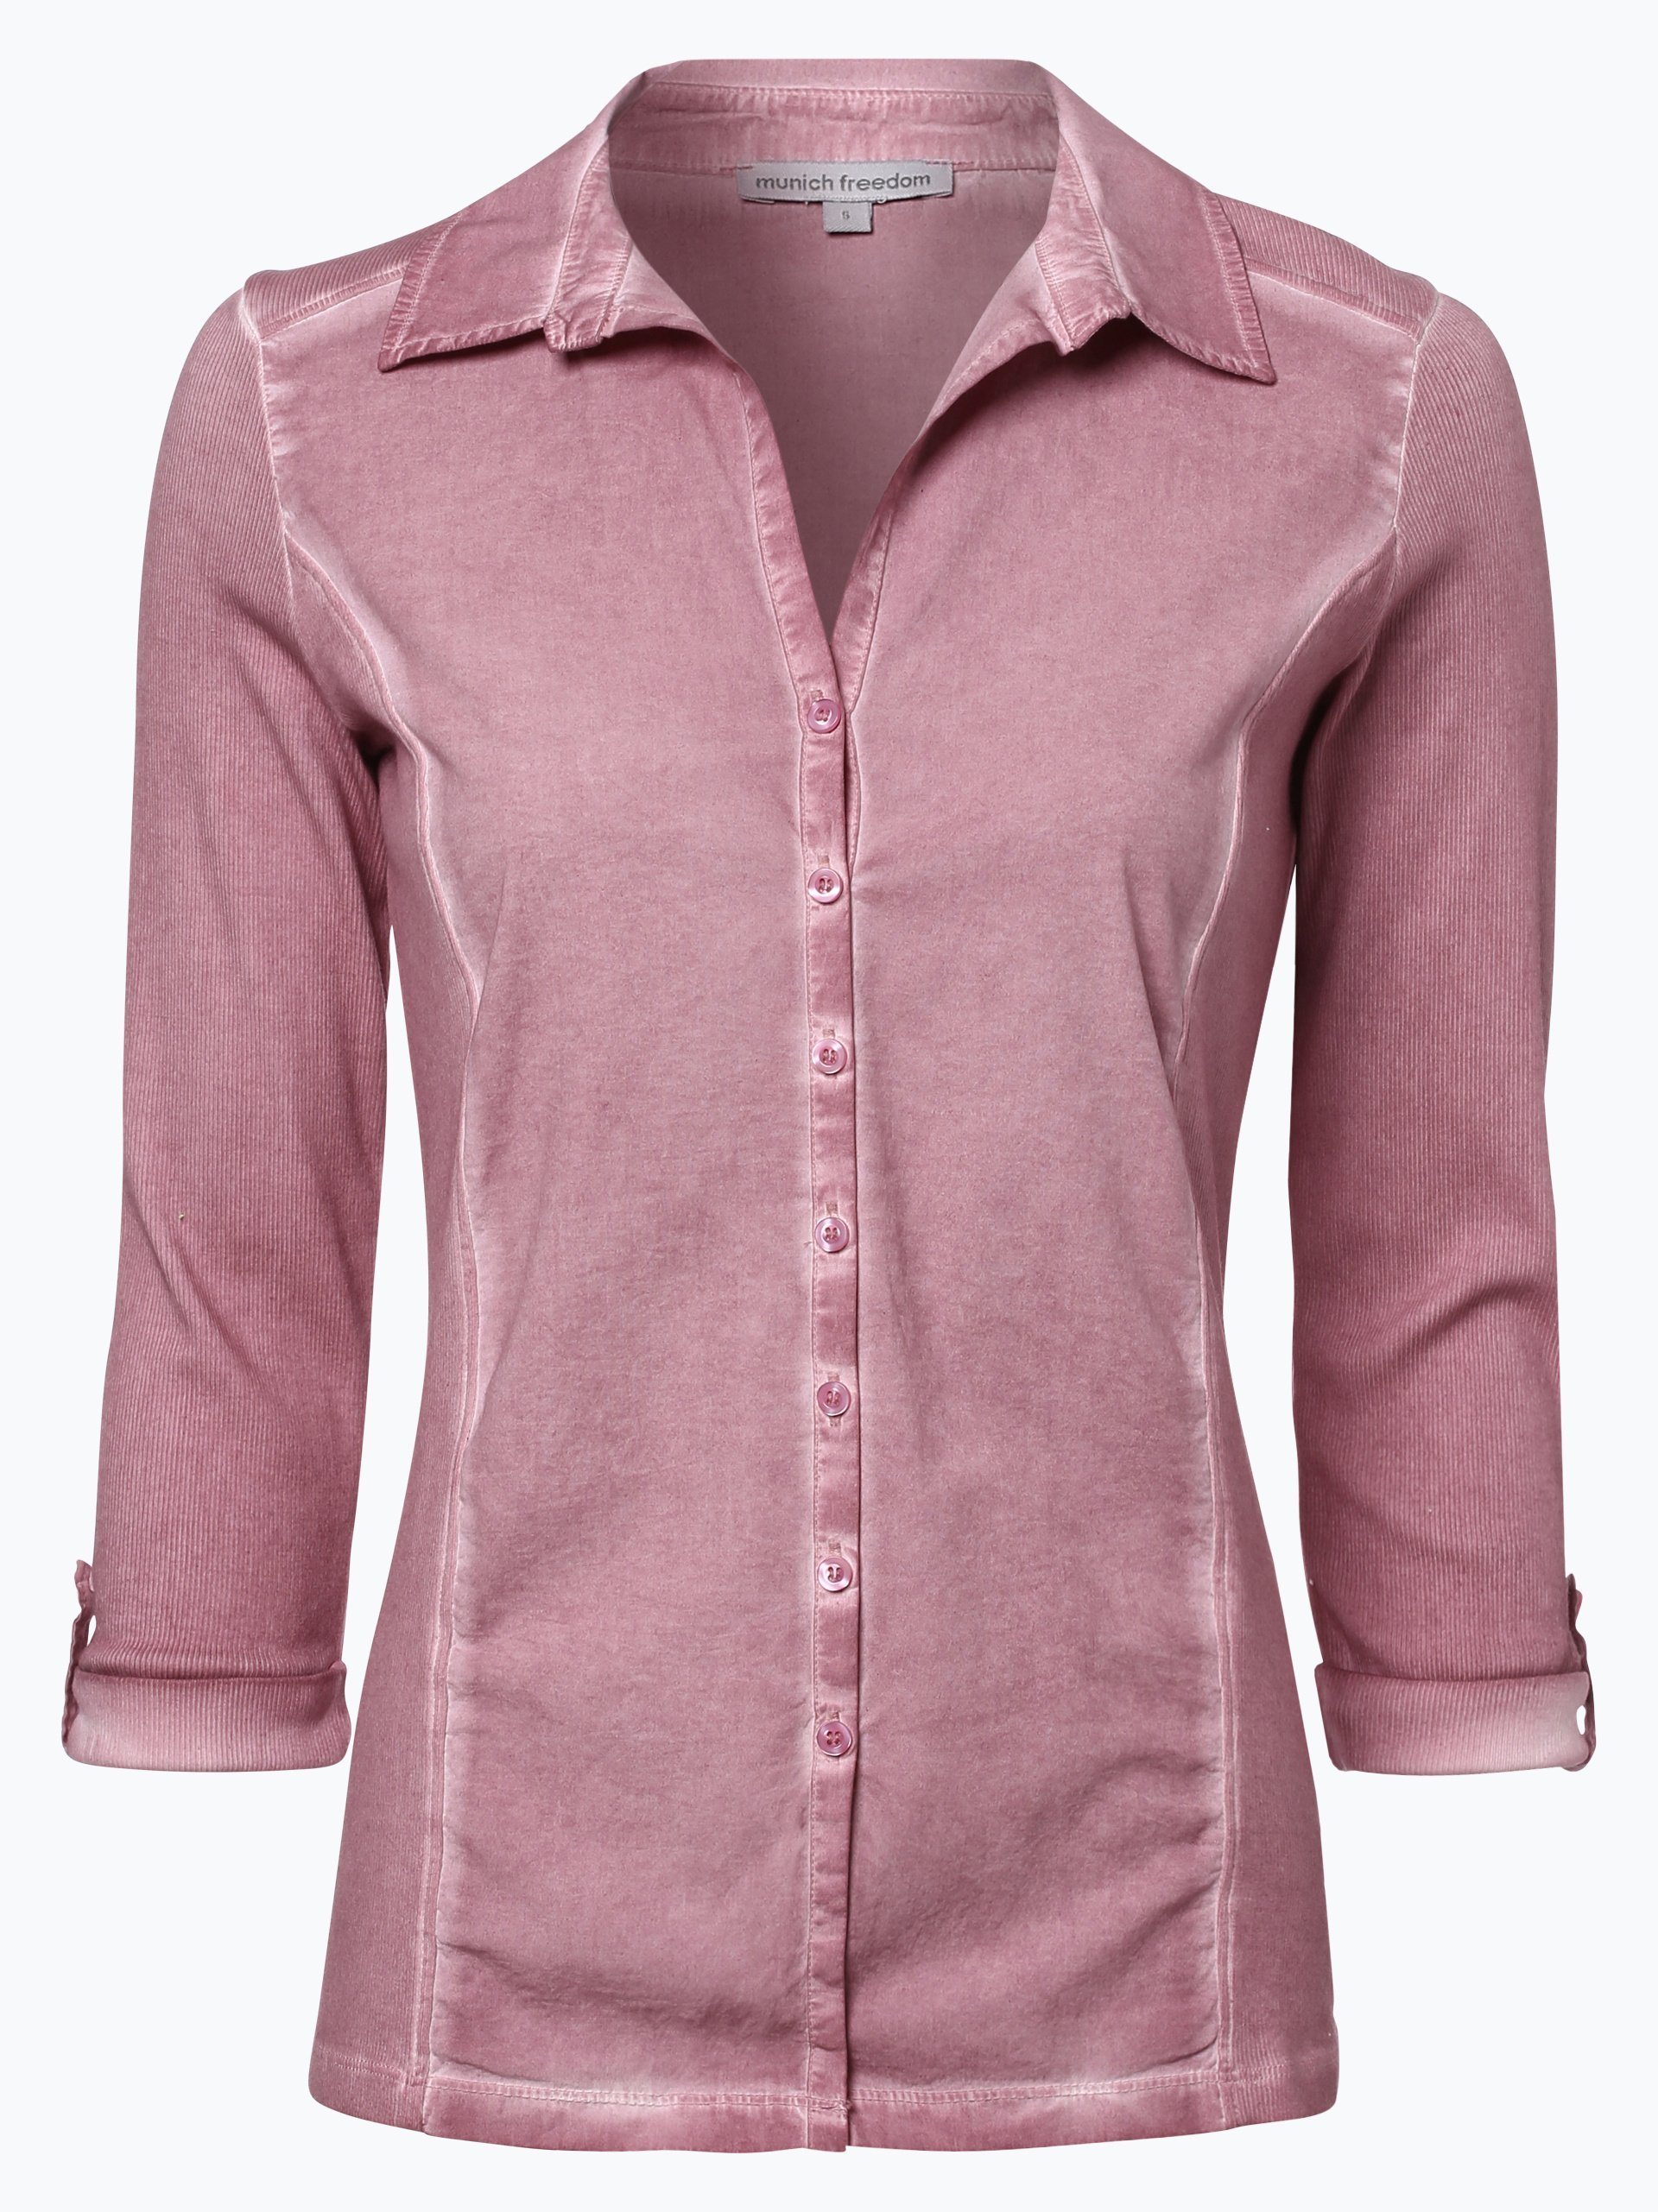 Munich Freedom Damen Bluse